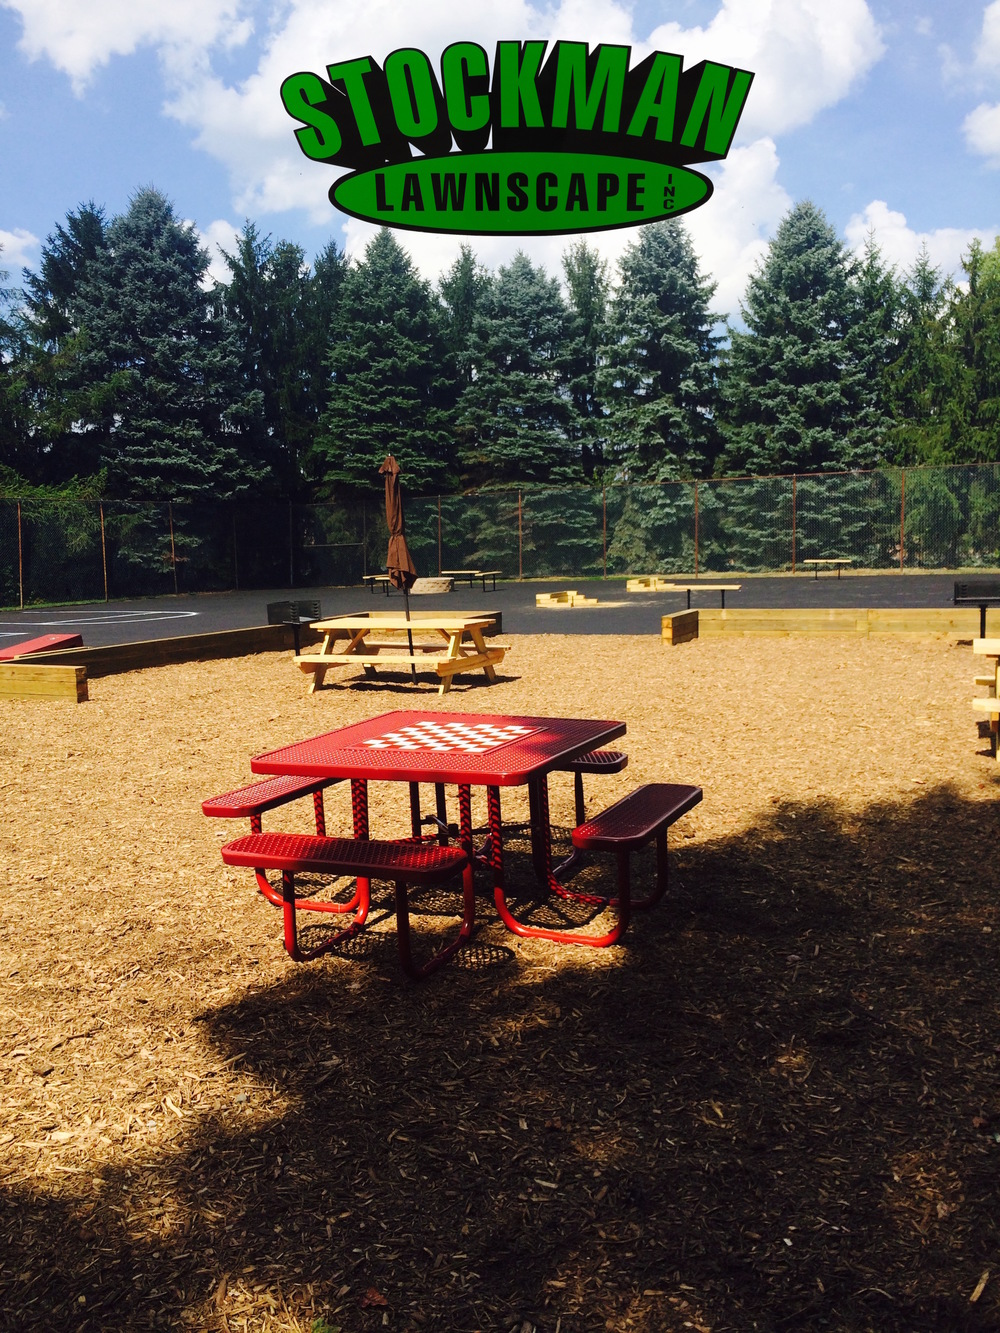 A custom recreational area built by Stockman Lawnscape.